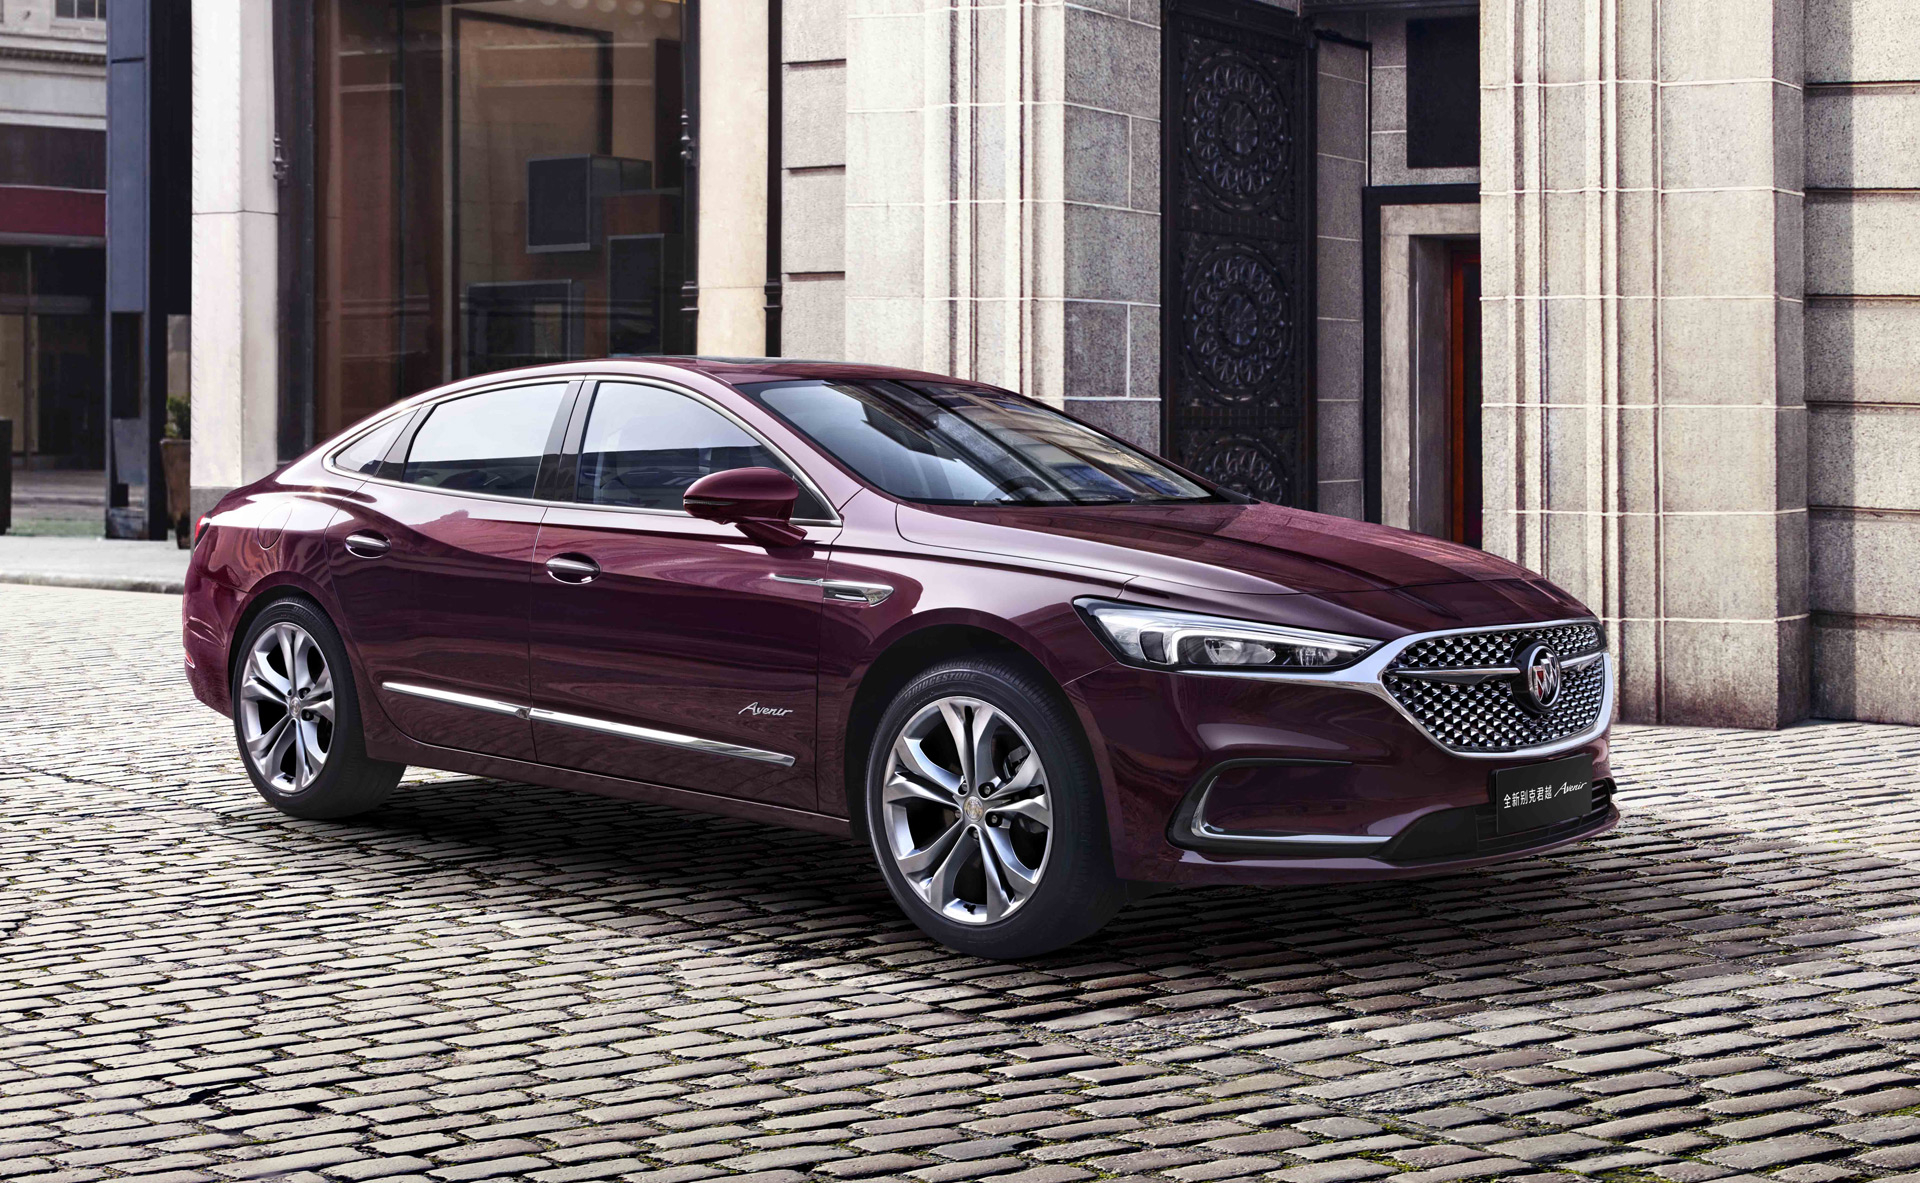 2020 Buick Lacrosse Made Handsome Just As It's Dropped In Us Will There Be A 2021 Buick Lacrosse